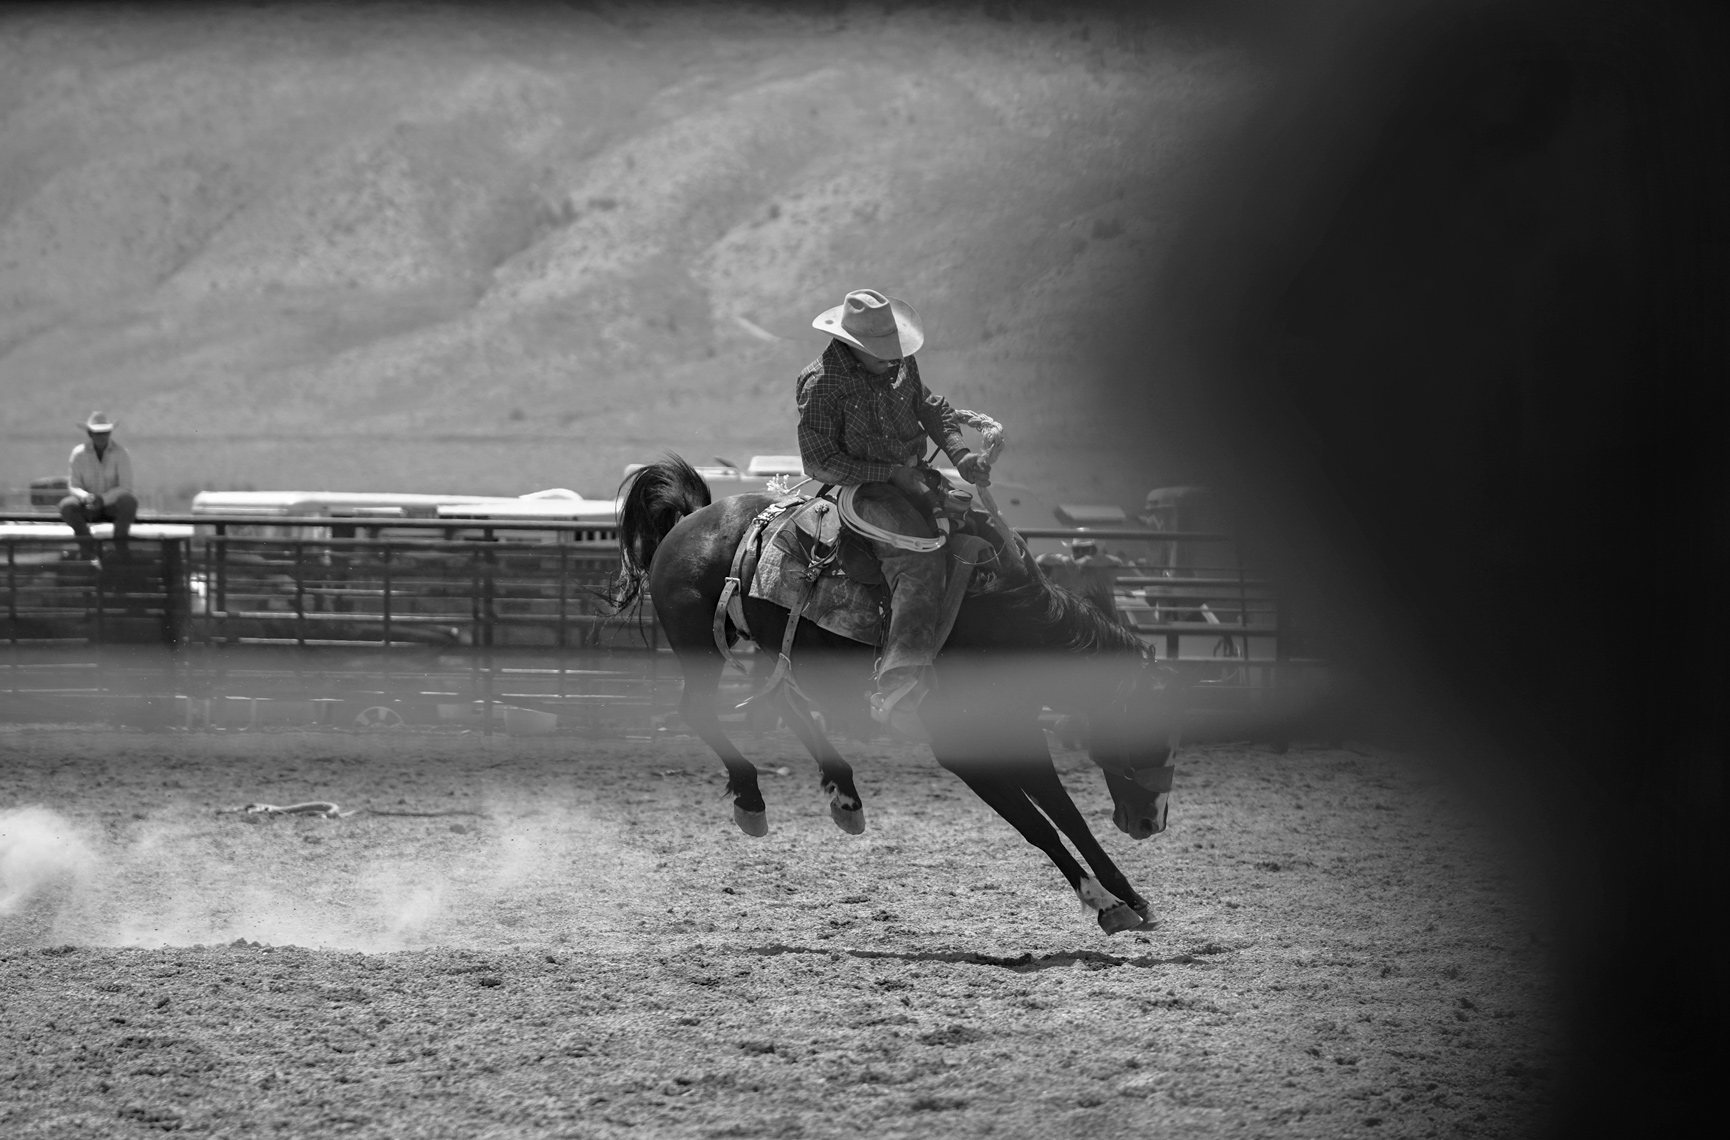 Roadtripping_BridgeportRodeo_BuckWithForeground_BroncRider04_Action_Personal_Retouched_Web